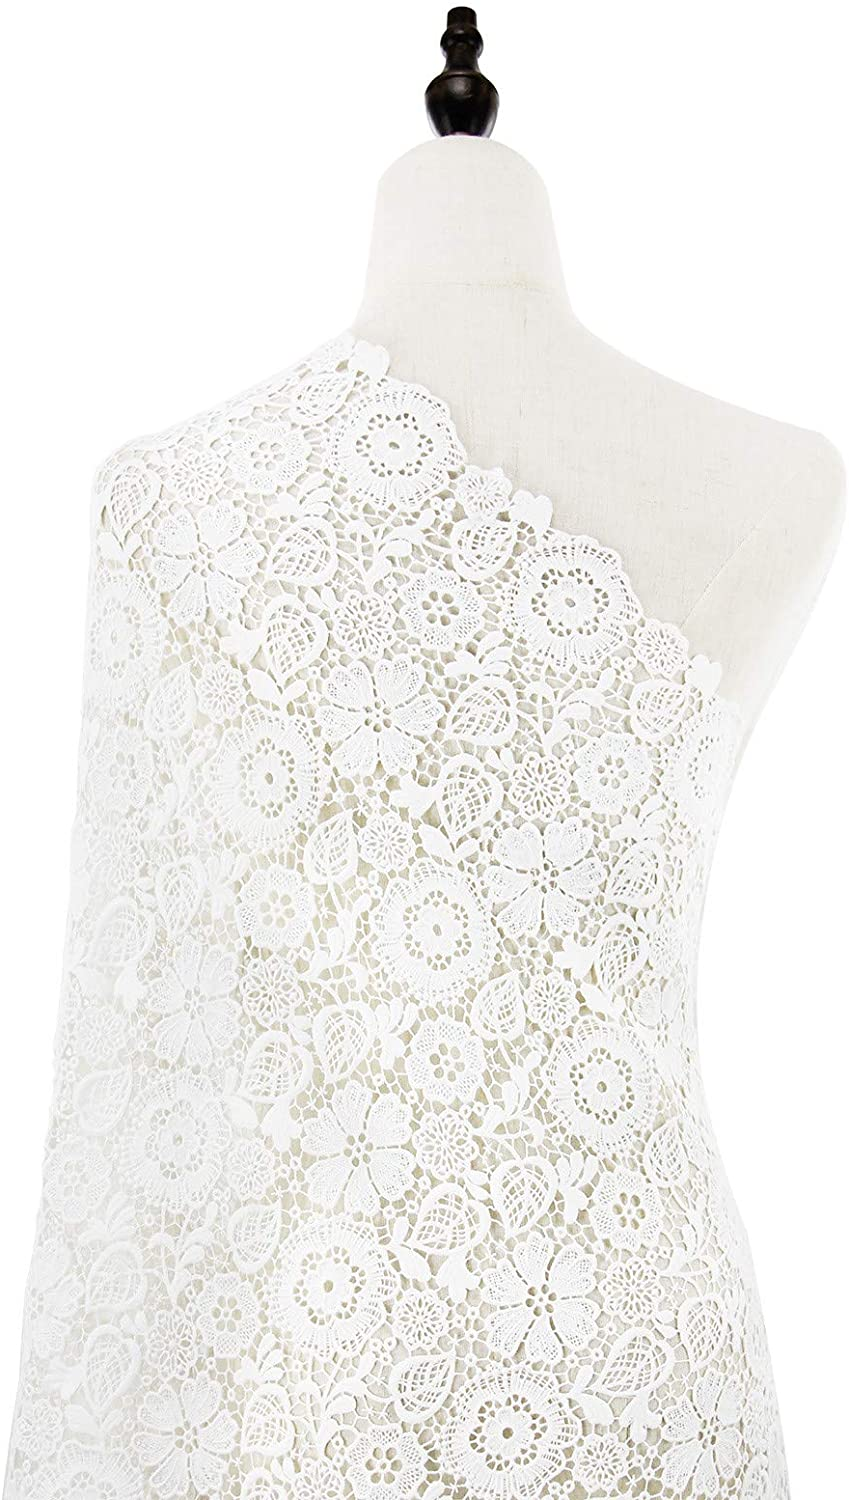 NJHG Lace Fabric 2 Yards Cotton Embroidered Flower Lace Fabric for Dressmaking Sewing Bridal Lace Applique Material